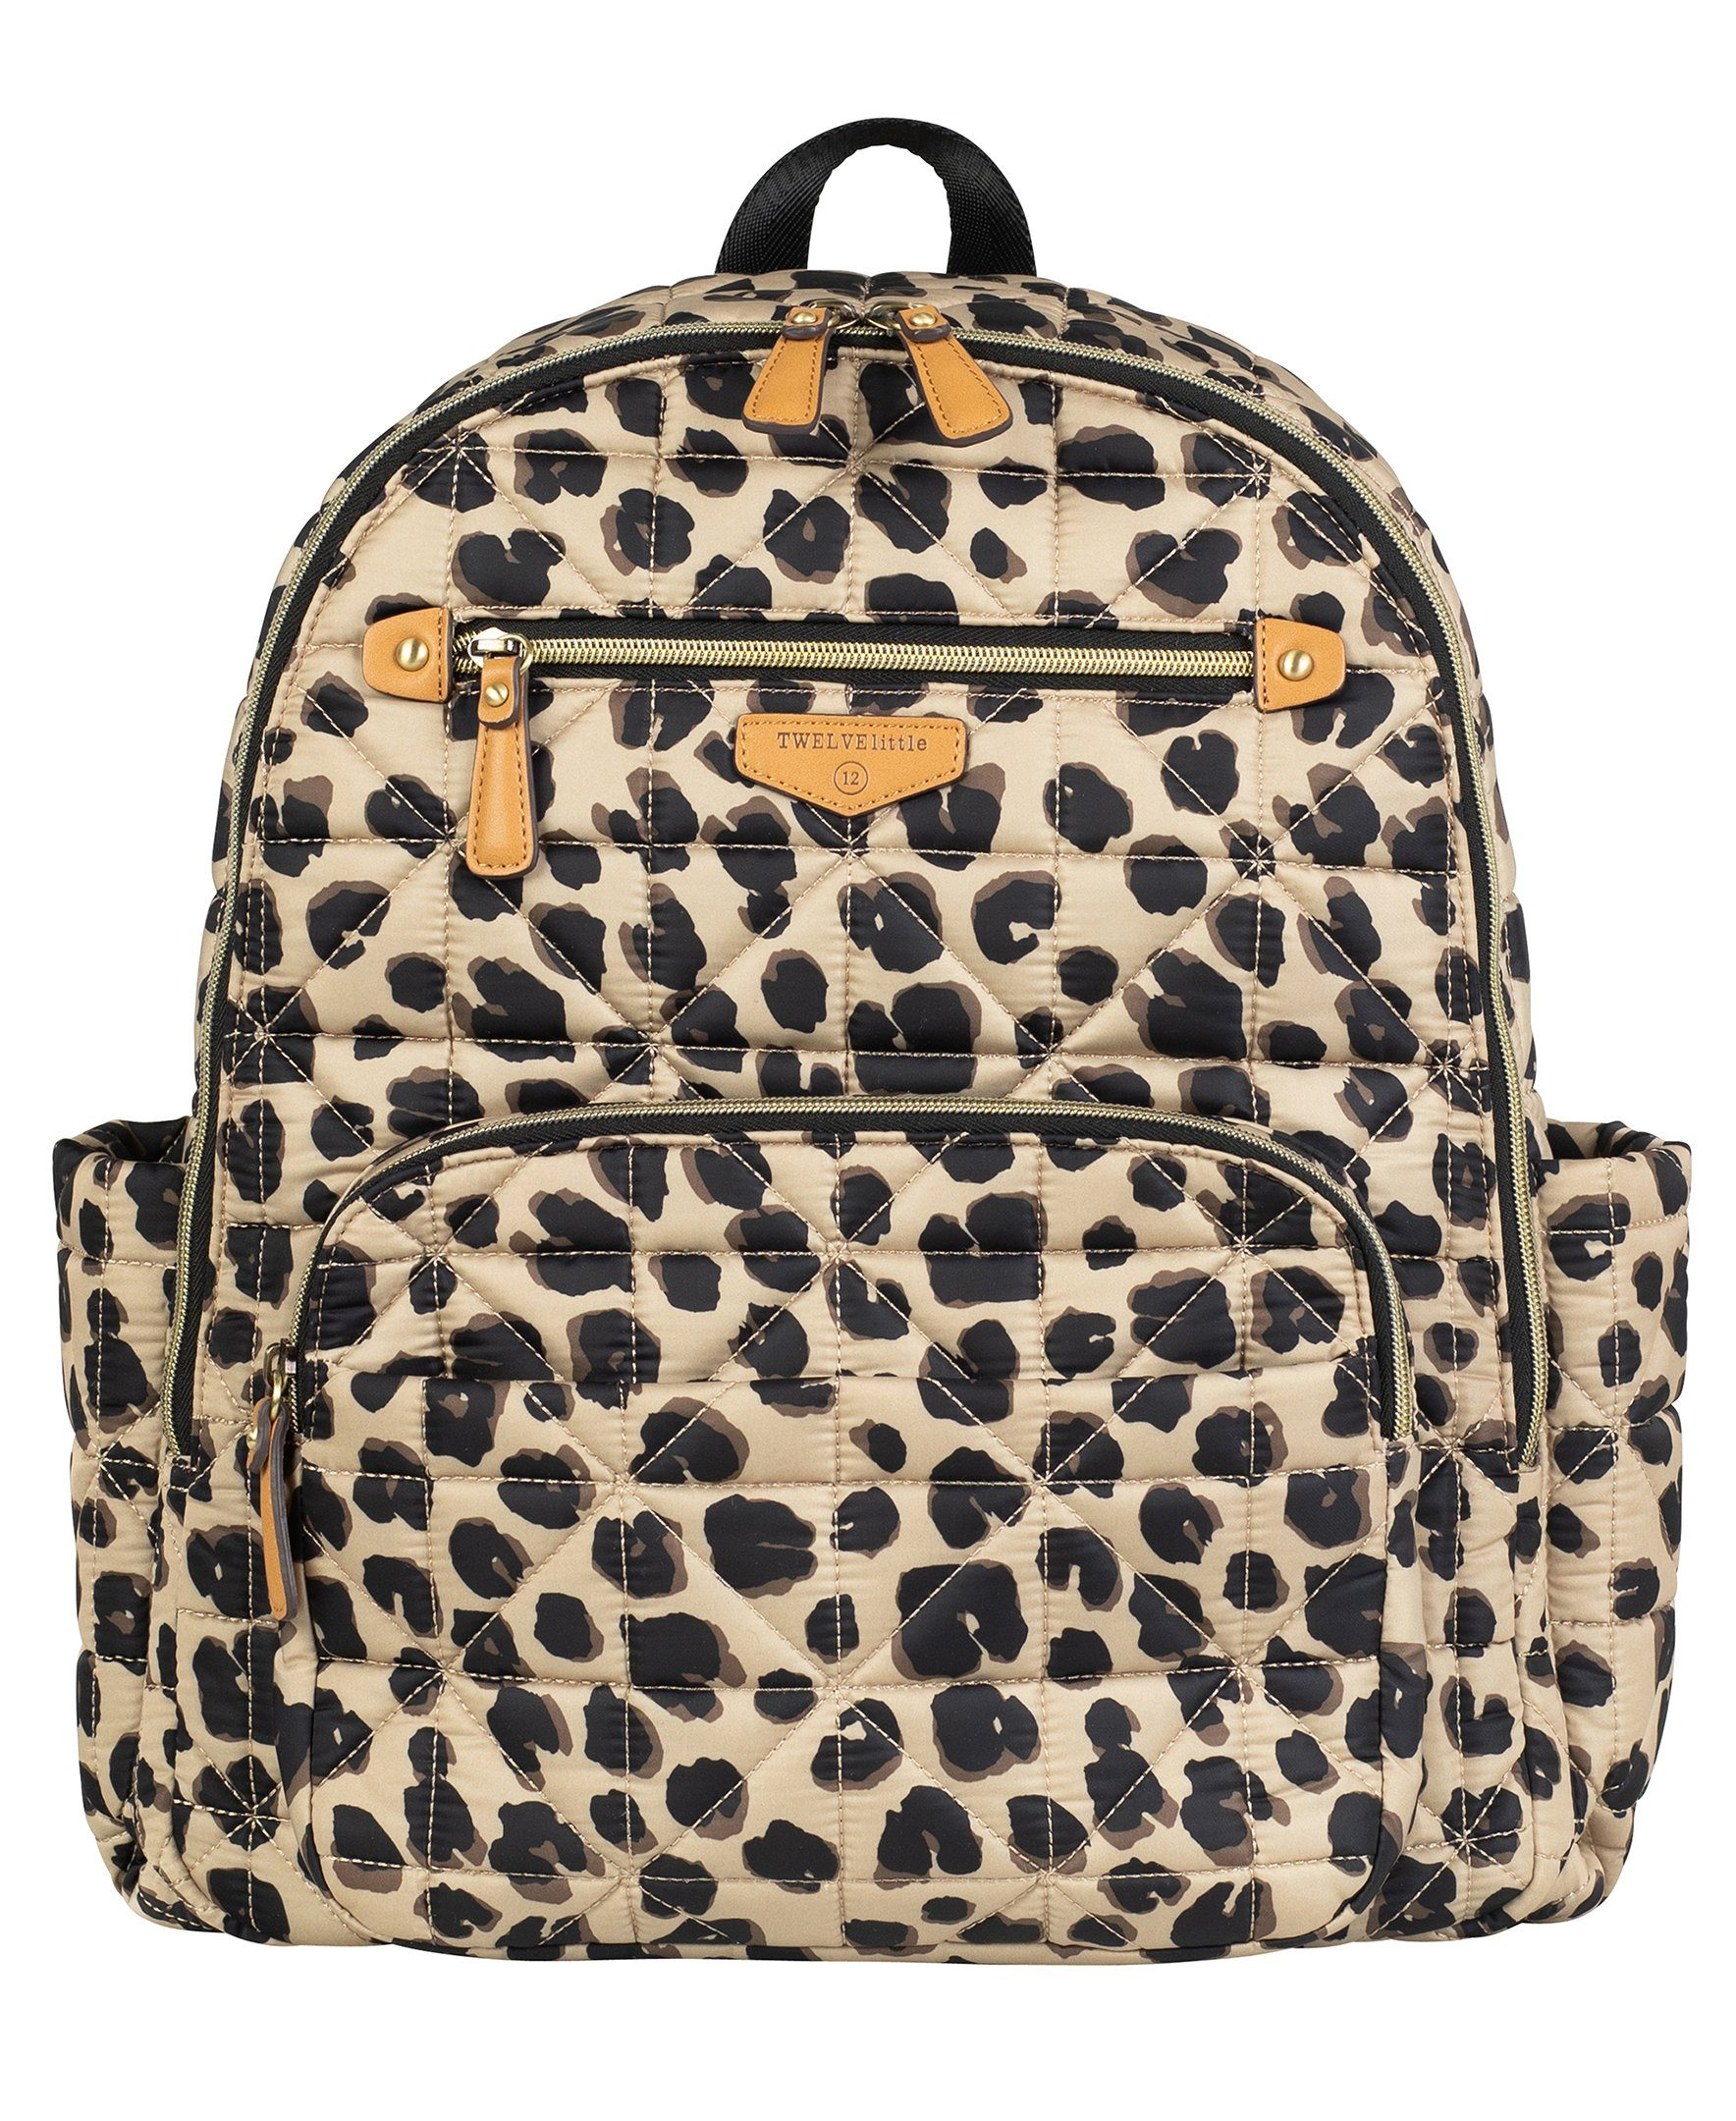 Companion Backpack - Leopard